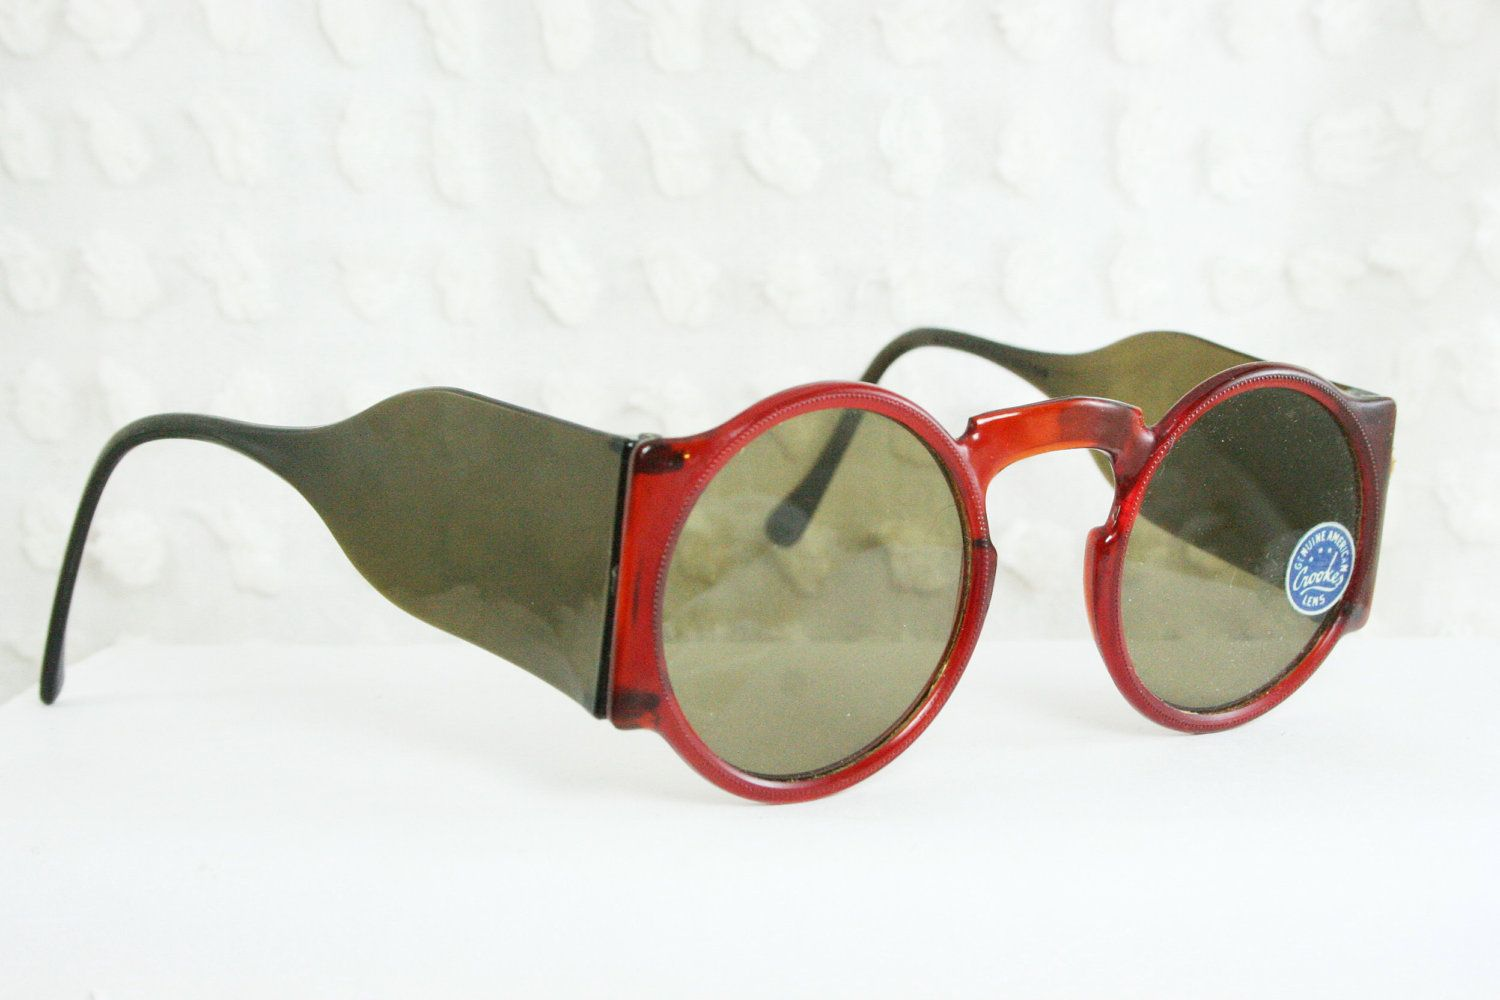 2ca8ea220 Vintage 40s Sunglasses 1930's Round Sunglasses Blinkers Windsor Cognac  Celluloid Side Shield with Authentic Crookes Gray Lens NOS Non Rx. $64.00,  via Etsy.